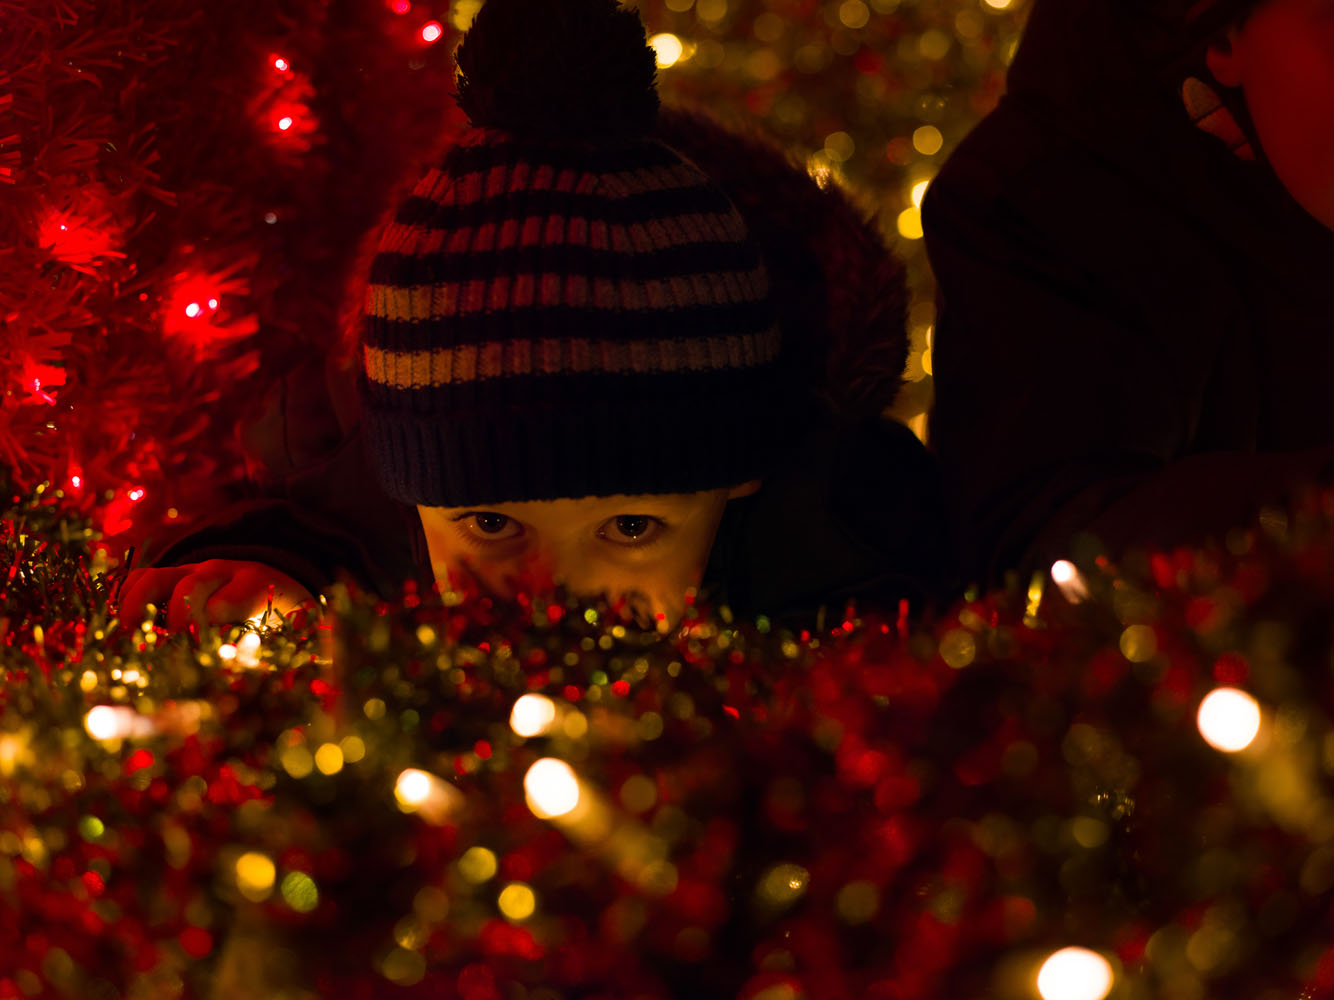 A child peaks out among Christmas Decorations.